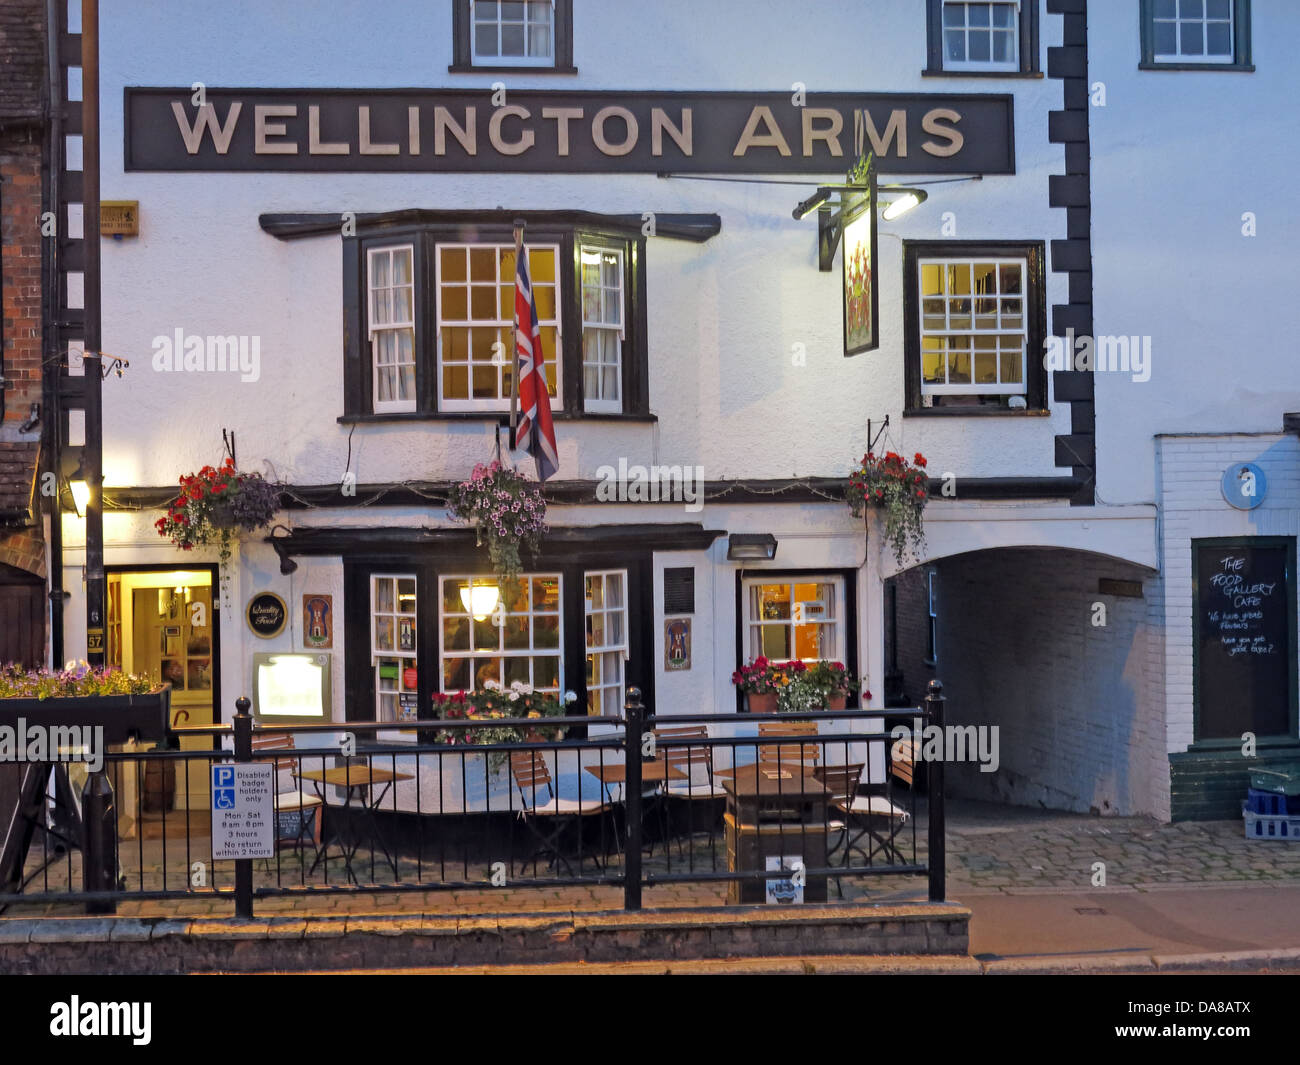 street,1HQ,at,dusk,traditional,public,house,Wiltshire,country,town,old,coaching,in,real,ale,ales,CAMRA,good,pub,guide,night,nightshot,shot,mixed,lighting,travel,tourist,tourism,bar,boozer,alehouse,SN81HQ,Food,Service,Atmosphere,Value,Friendly local pub small quaint drinking establishment cobble,gotonysmith,cobbled,cobbles,union,jack,flag,unionflag,english,british,GB,great,Britain,traditional,county,white,and,black,faced,Uk,United,Kingdom,licensing,licencing,hours,restrictive,allday,all,day,under,threat,closing,pubco,Wellingtonarms,good,pub,guide,guides,big,wide,sign,Buy Pictures of,Buy Images Of